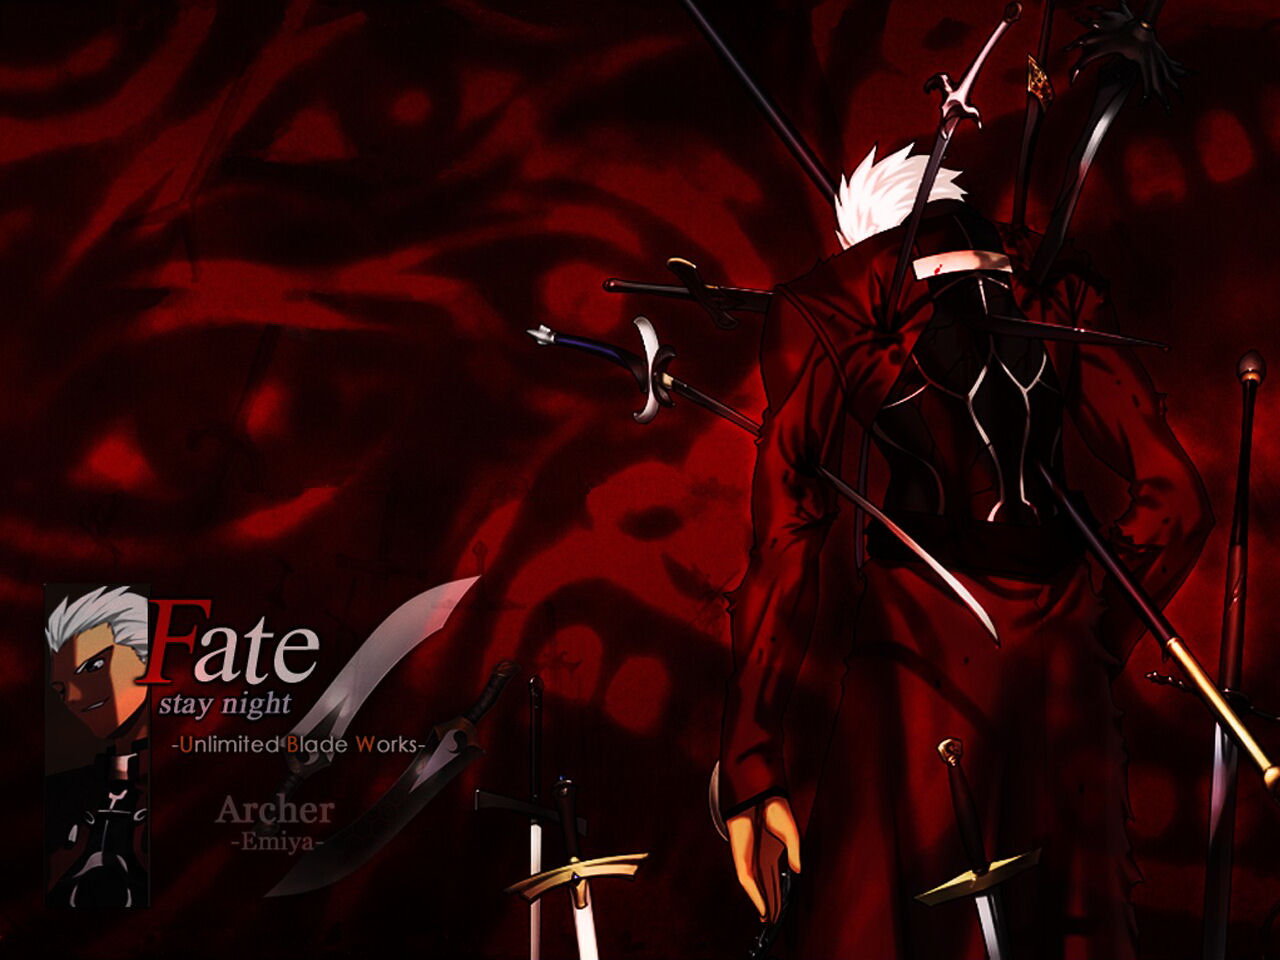 26 FateStay Night Unlimited Blade Works HD Wallpapers 1280x960